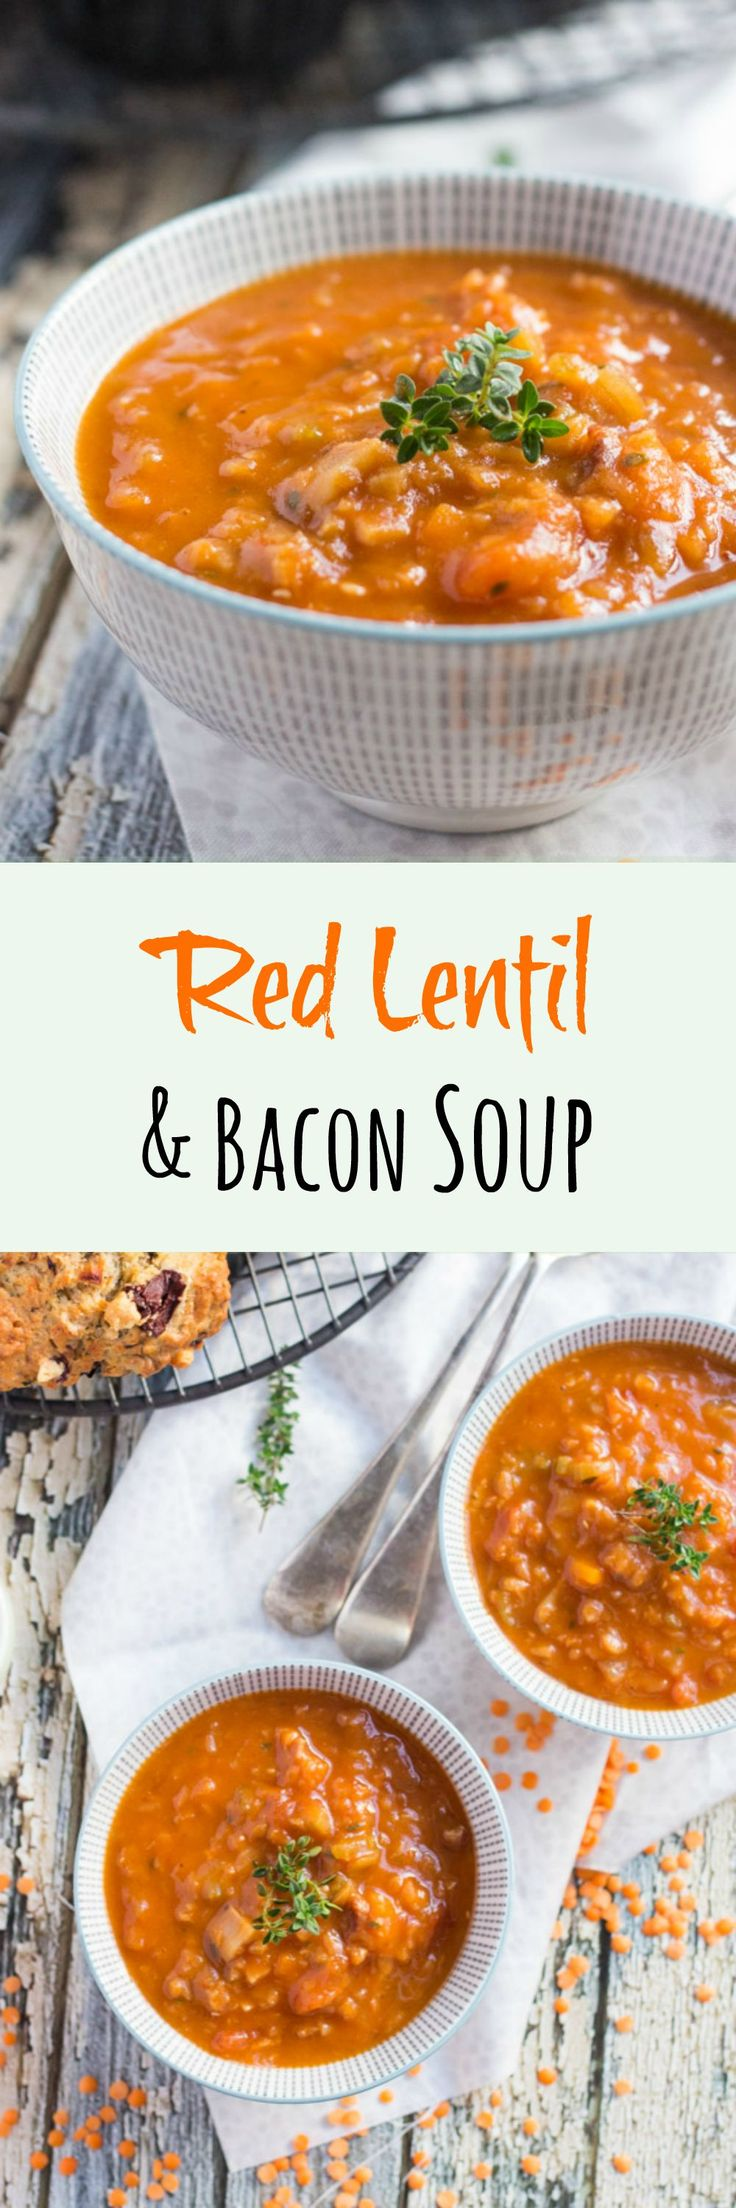 Red Lentil & Bacon Soup.  A simple yet hearty soup.  Perfect for a busy weeknight dinner.